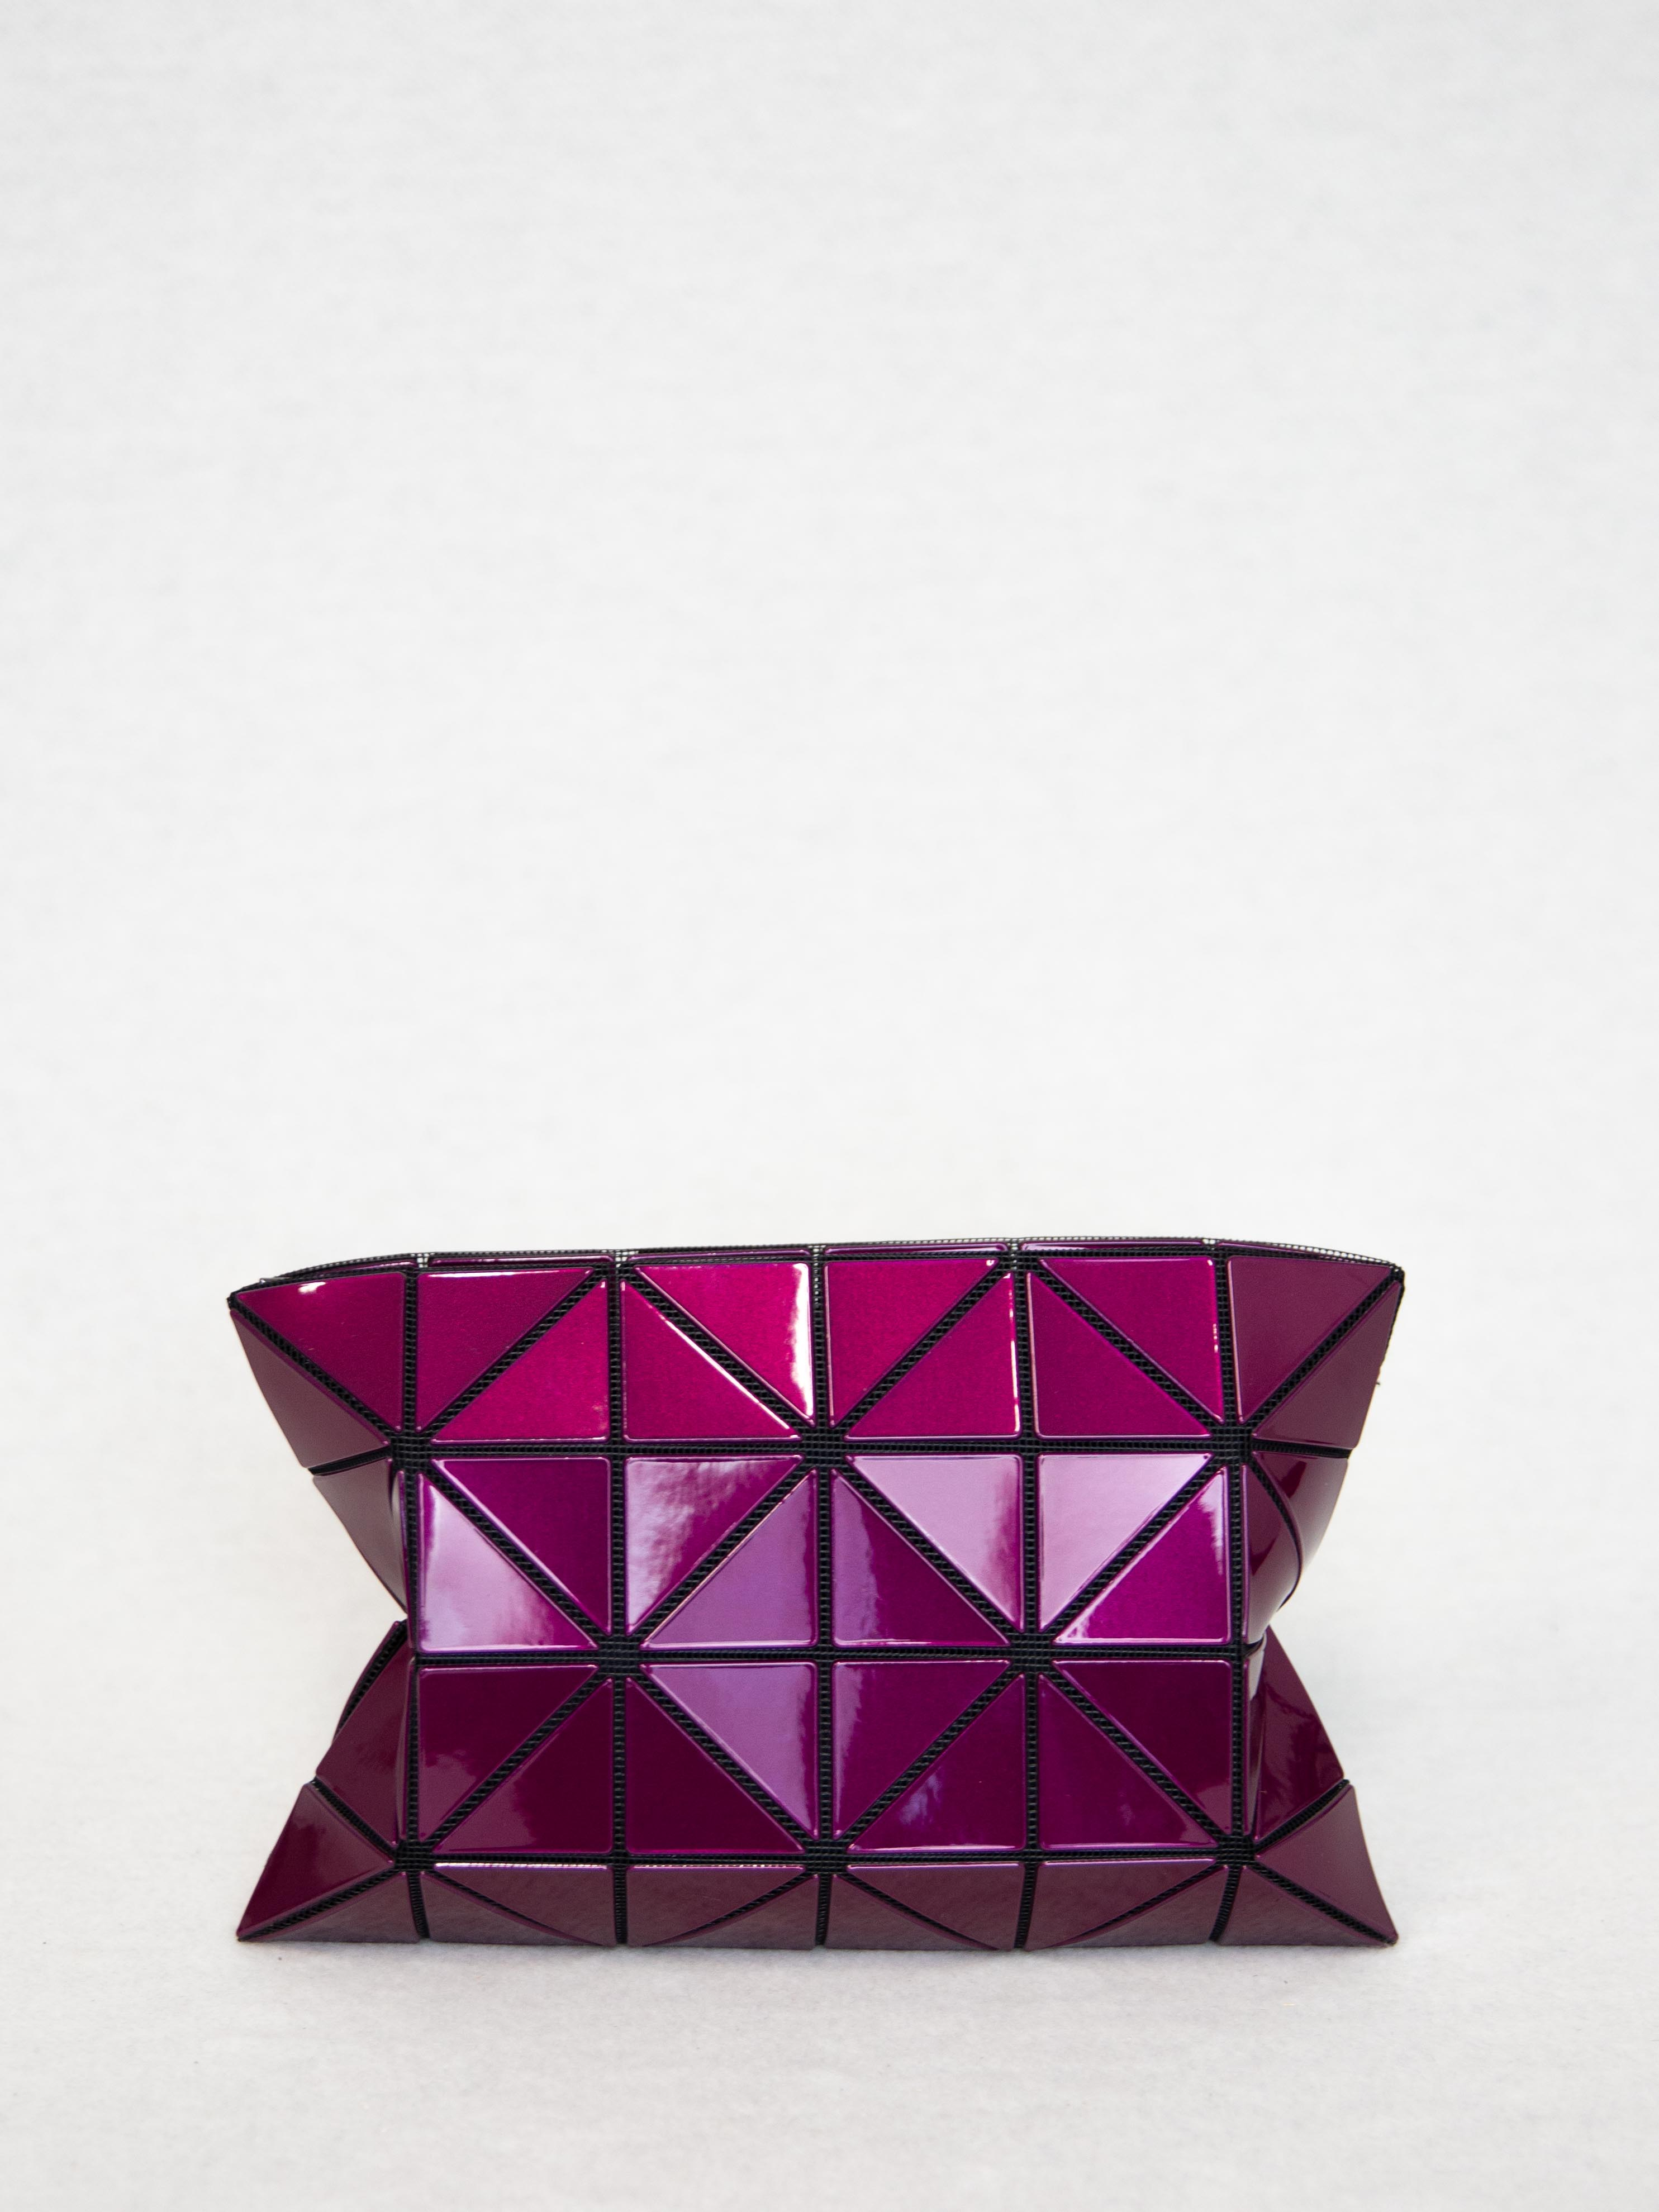 c9cb13d4cb83 BAO BAO ISSEY MIYAKE Lucent Metallic Zip Pouch - Bordeaux – Shifting Worlds